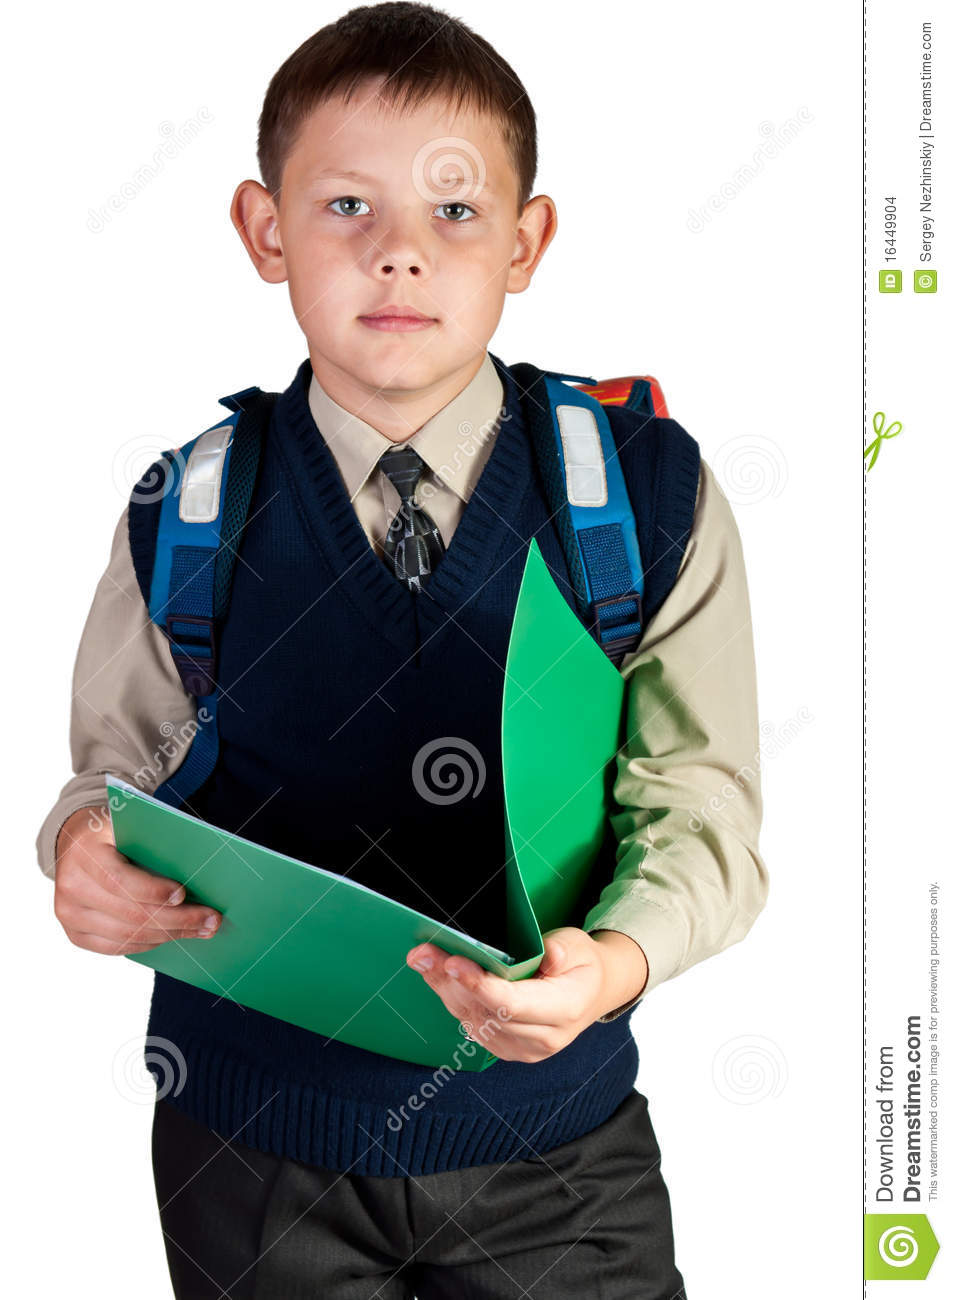 Schoolboy Stock Images - Image: 16449904